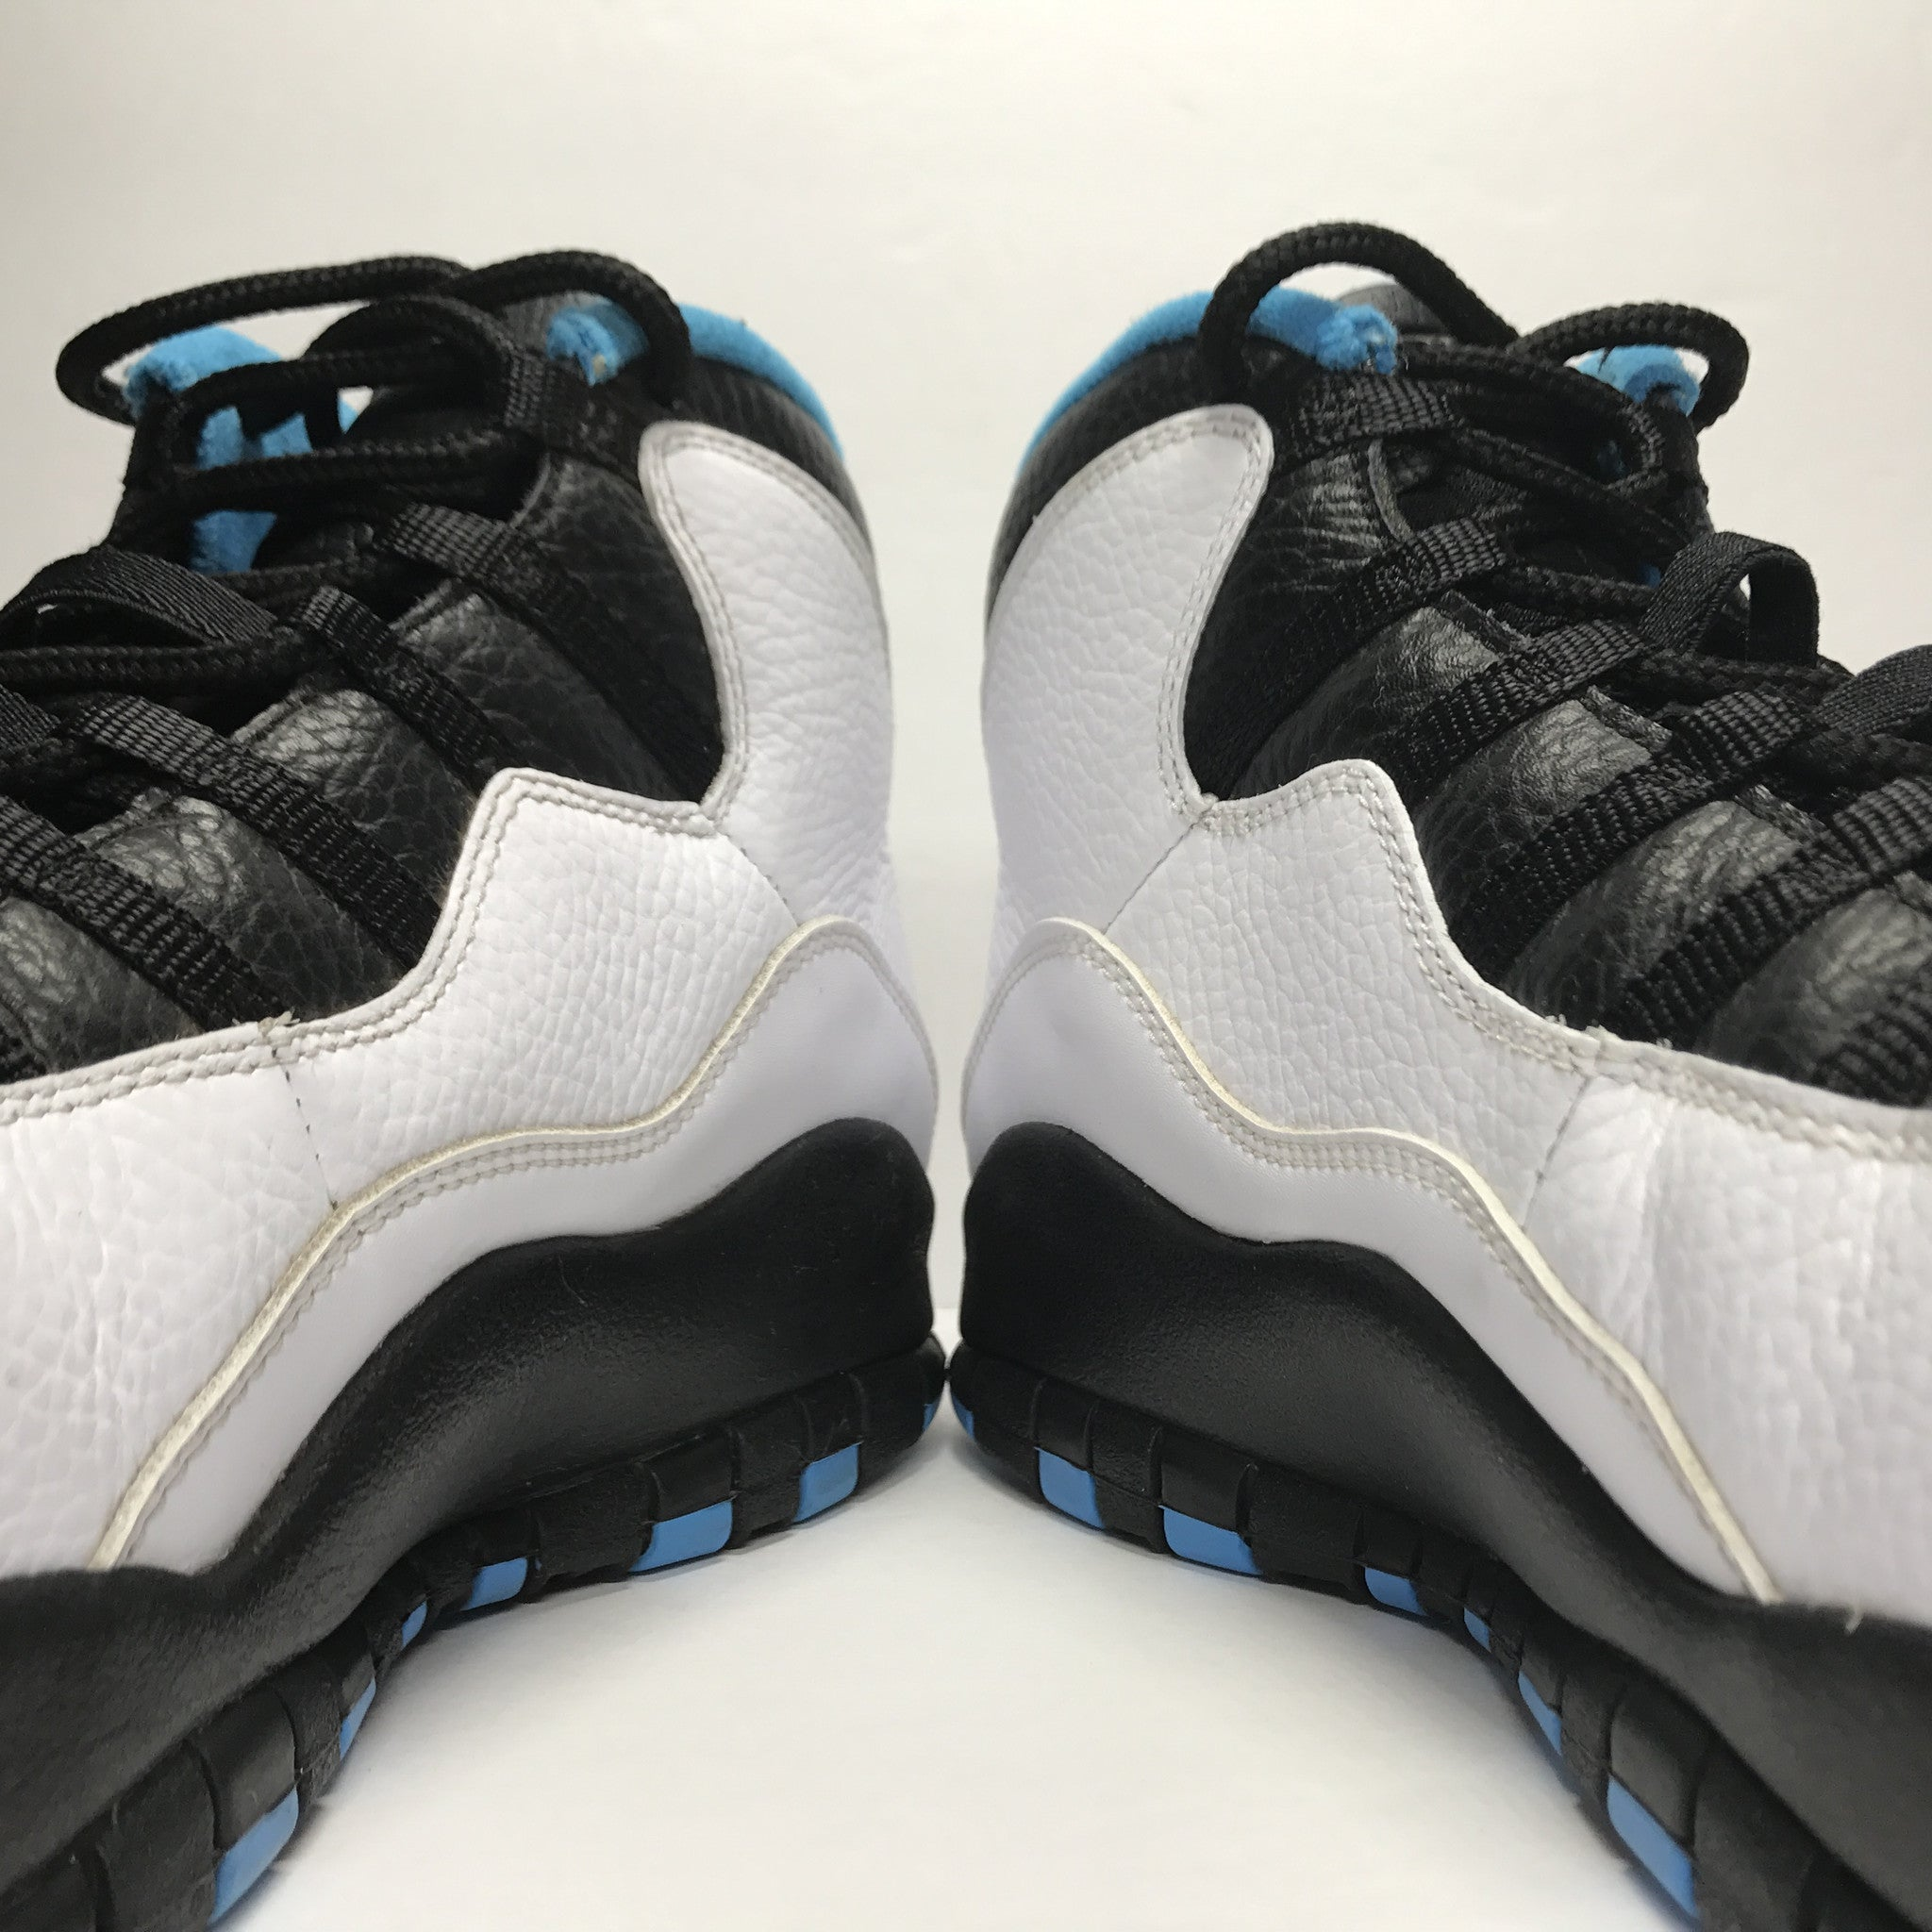 Nike Air Jordan 10 X Retro Powder Blue Size 12